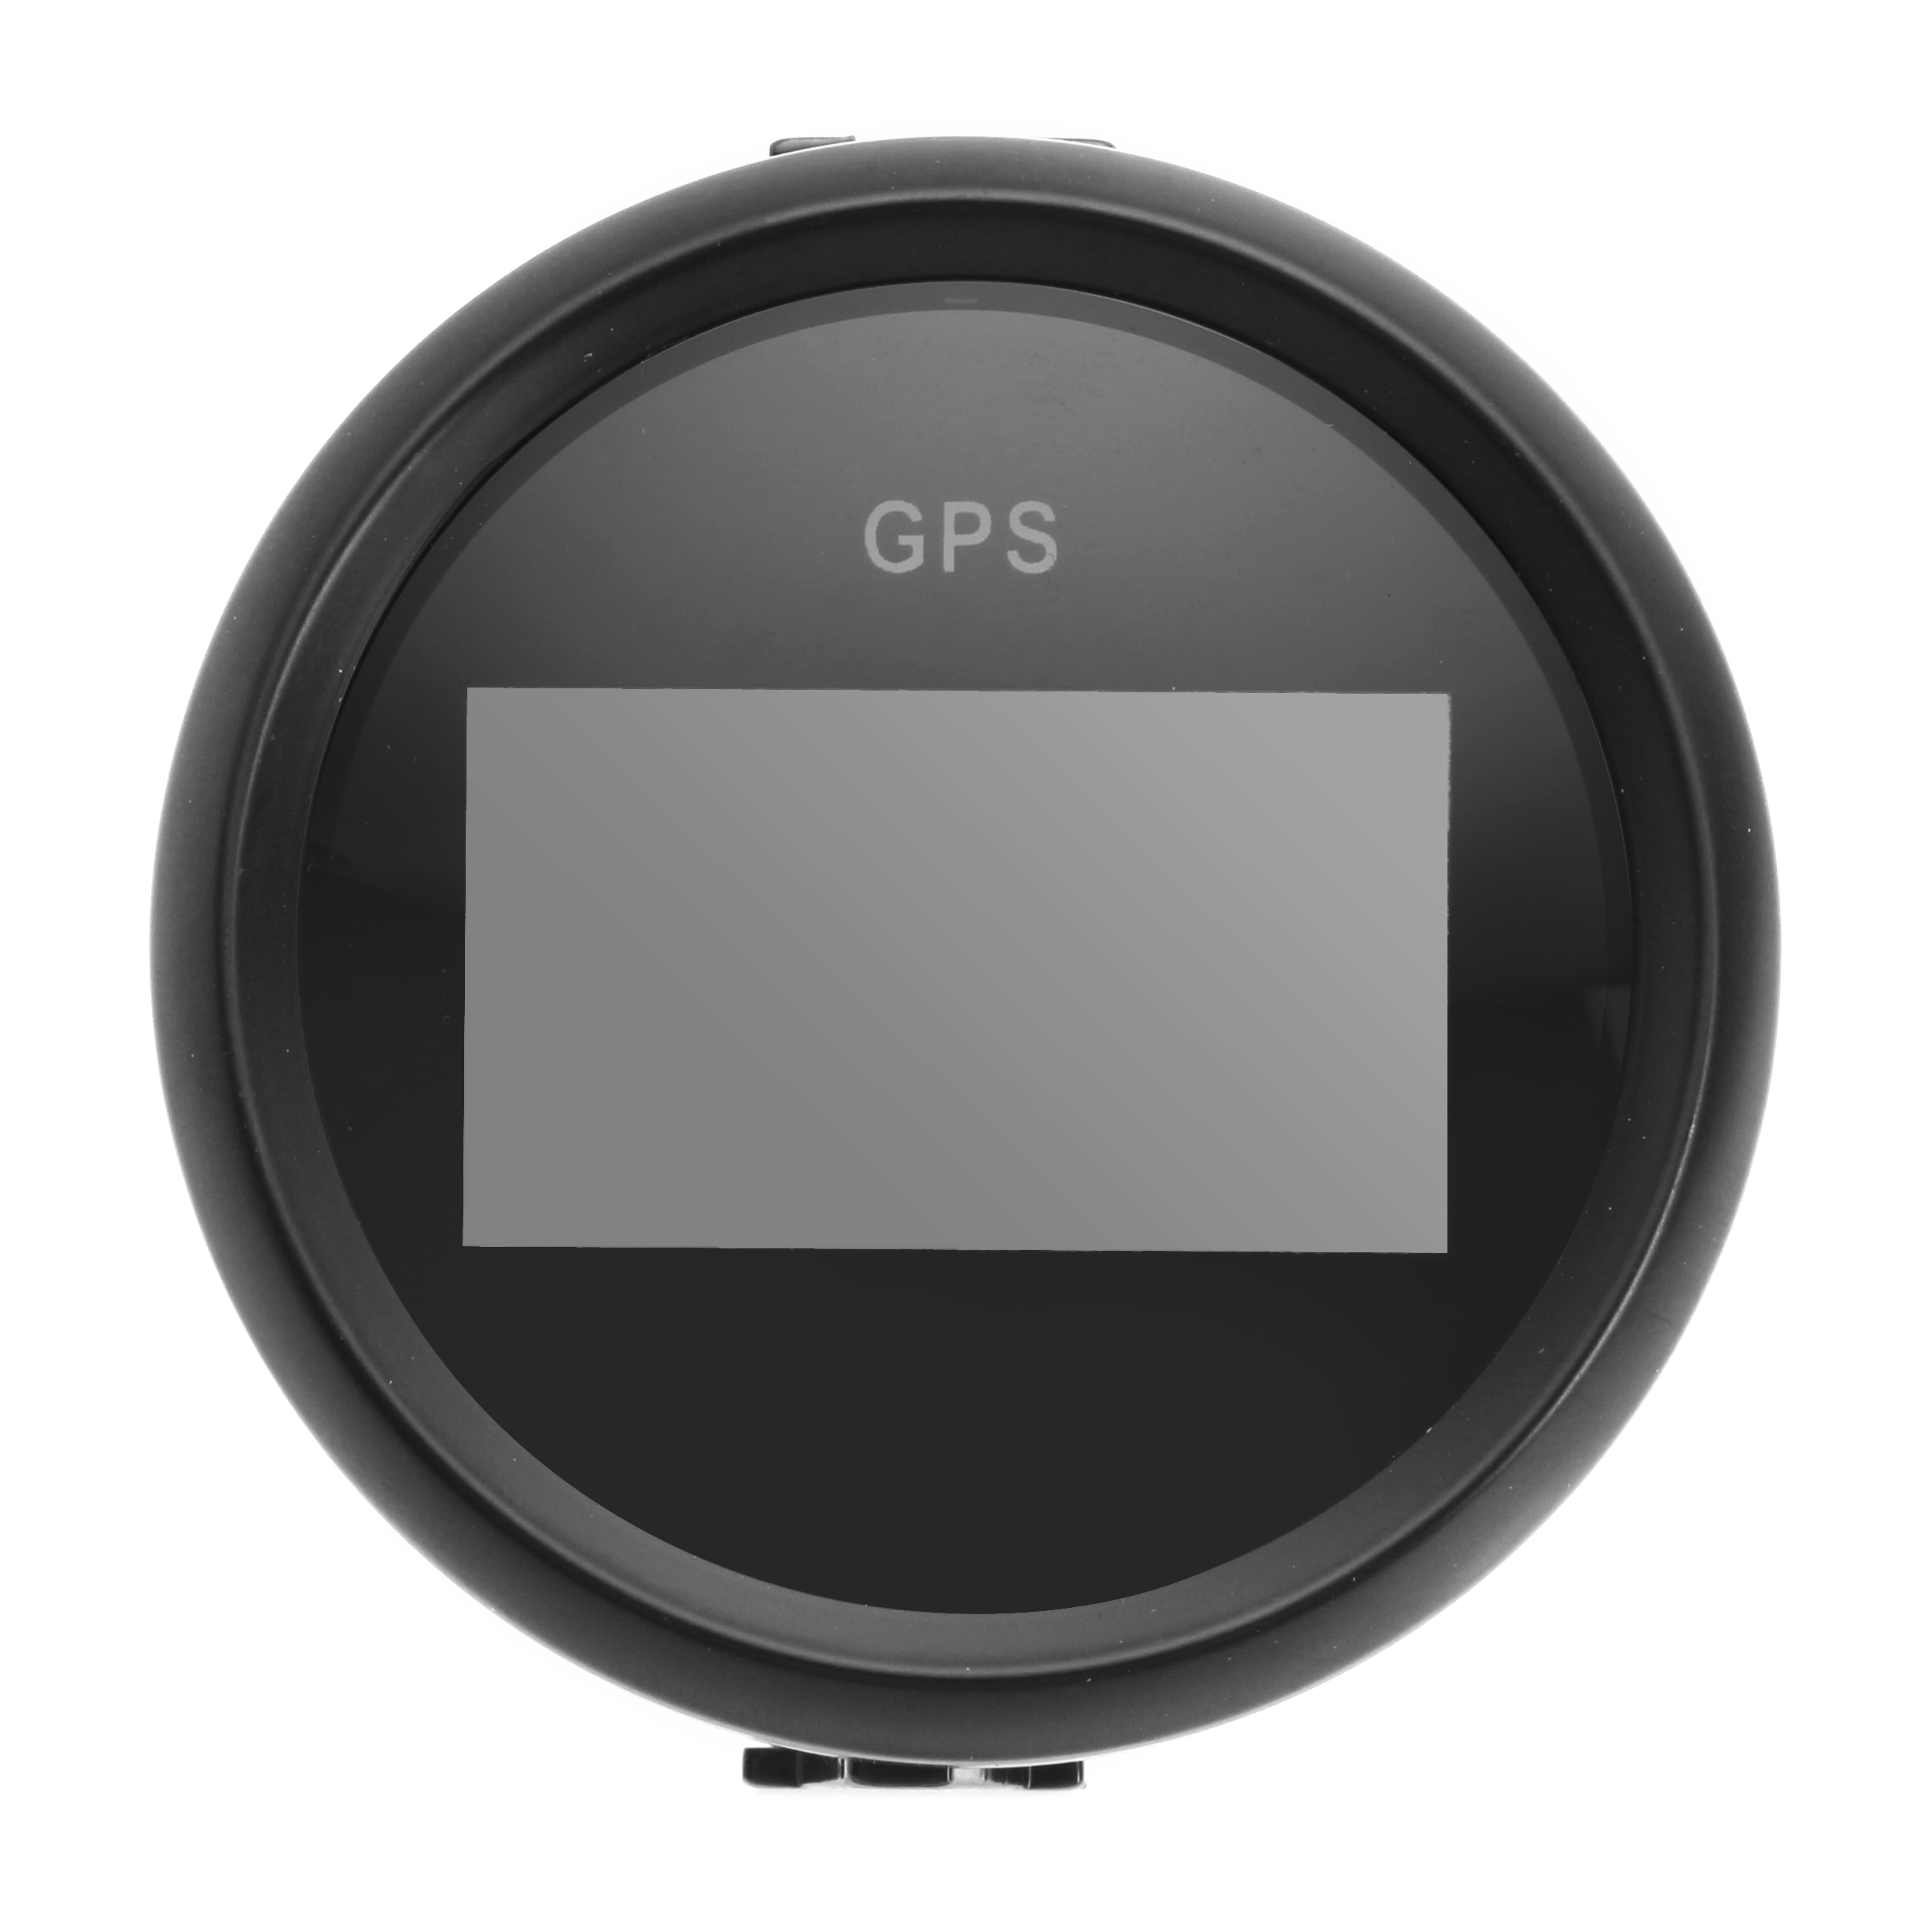 52mm Waterproof GPS Digital Speedometer Gauge For Motorcycle Marine Boat Car Truck